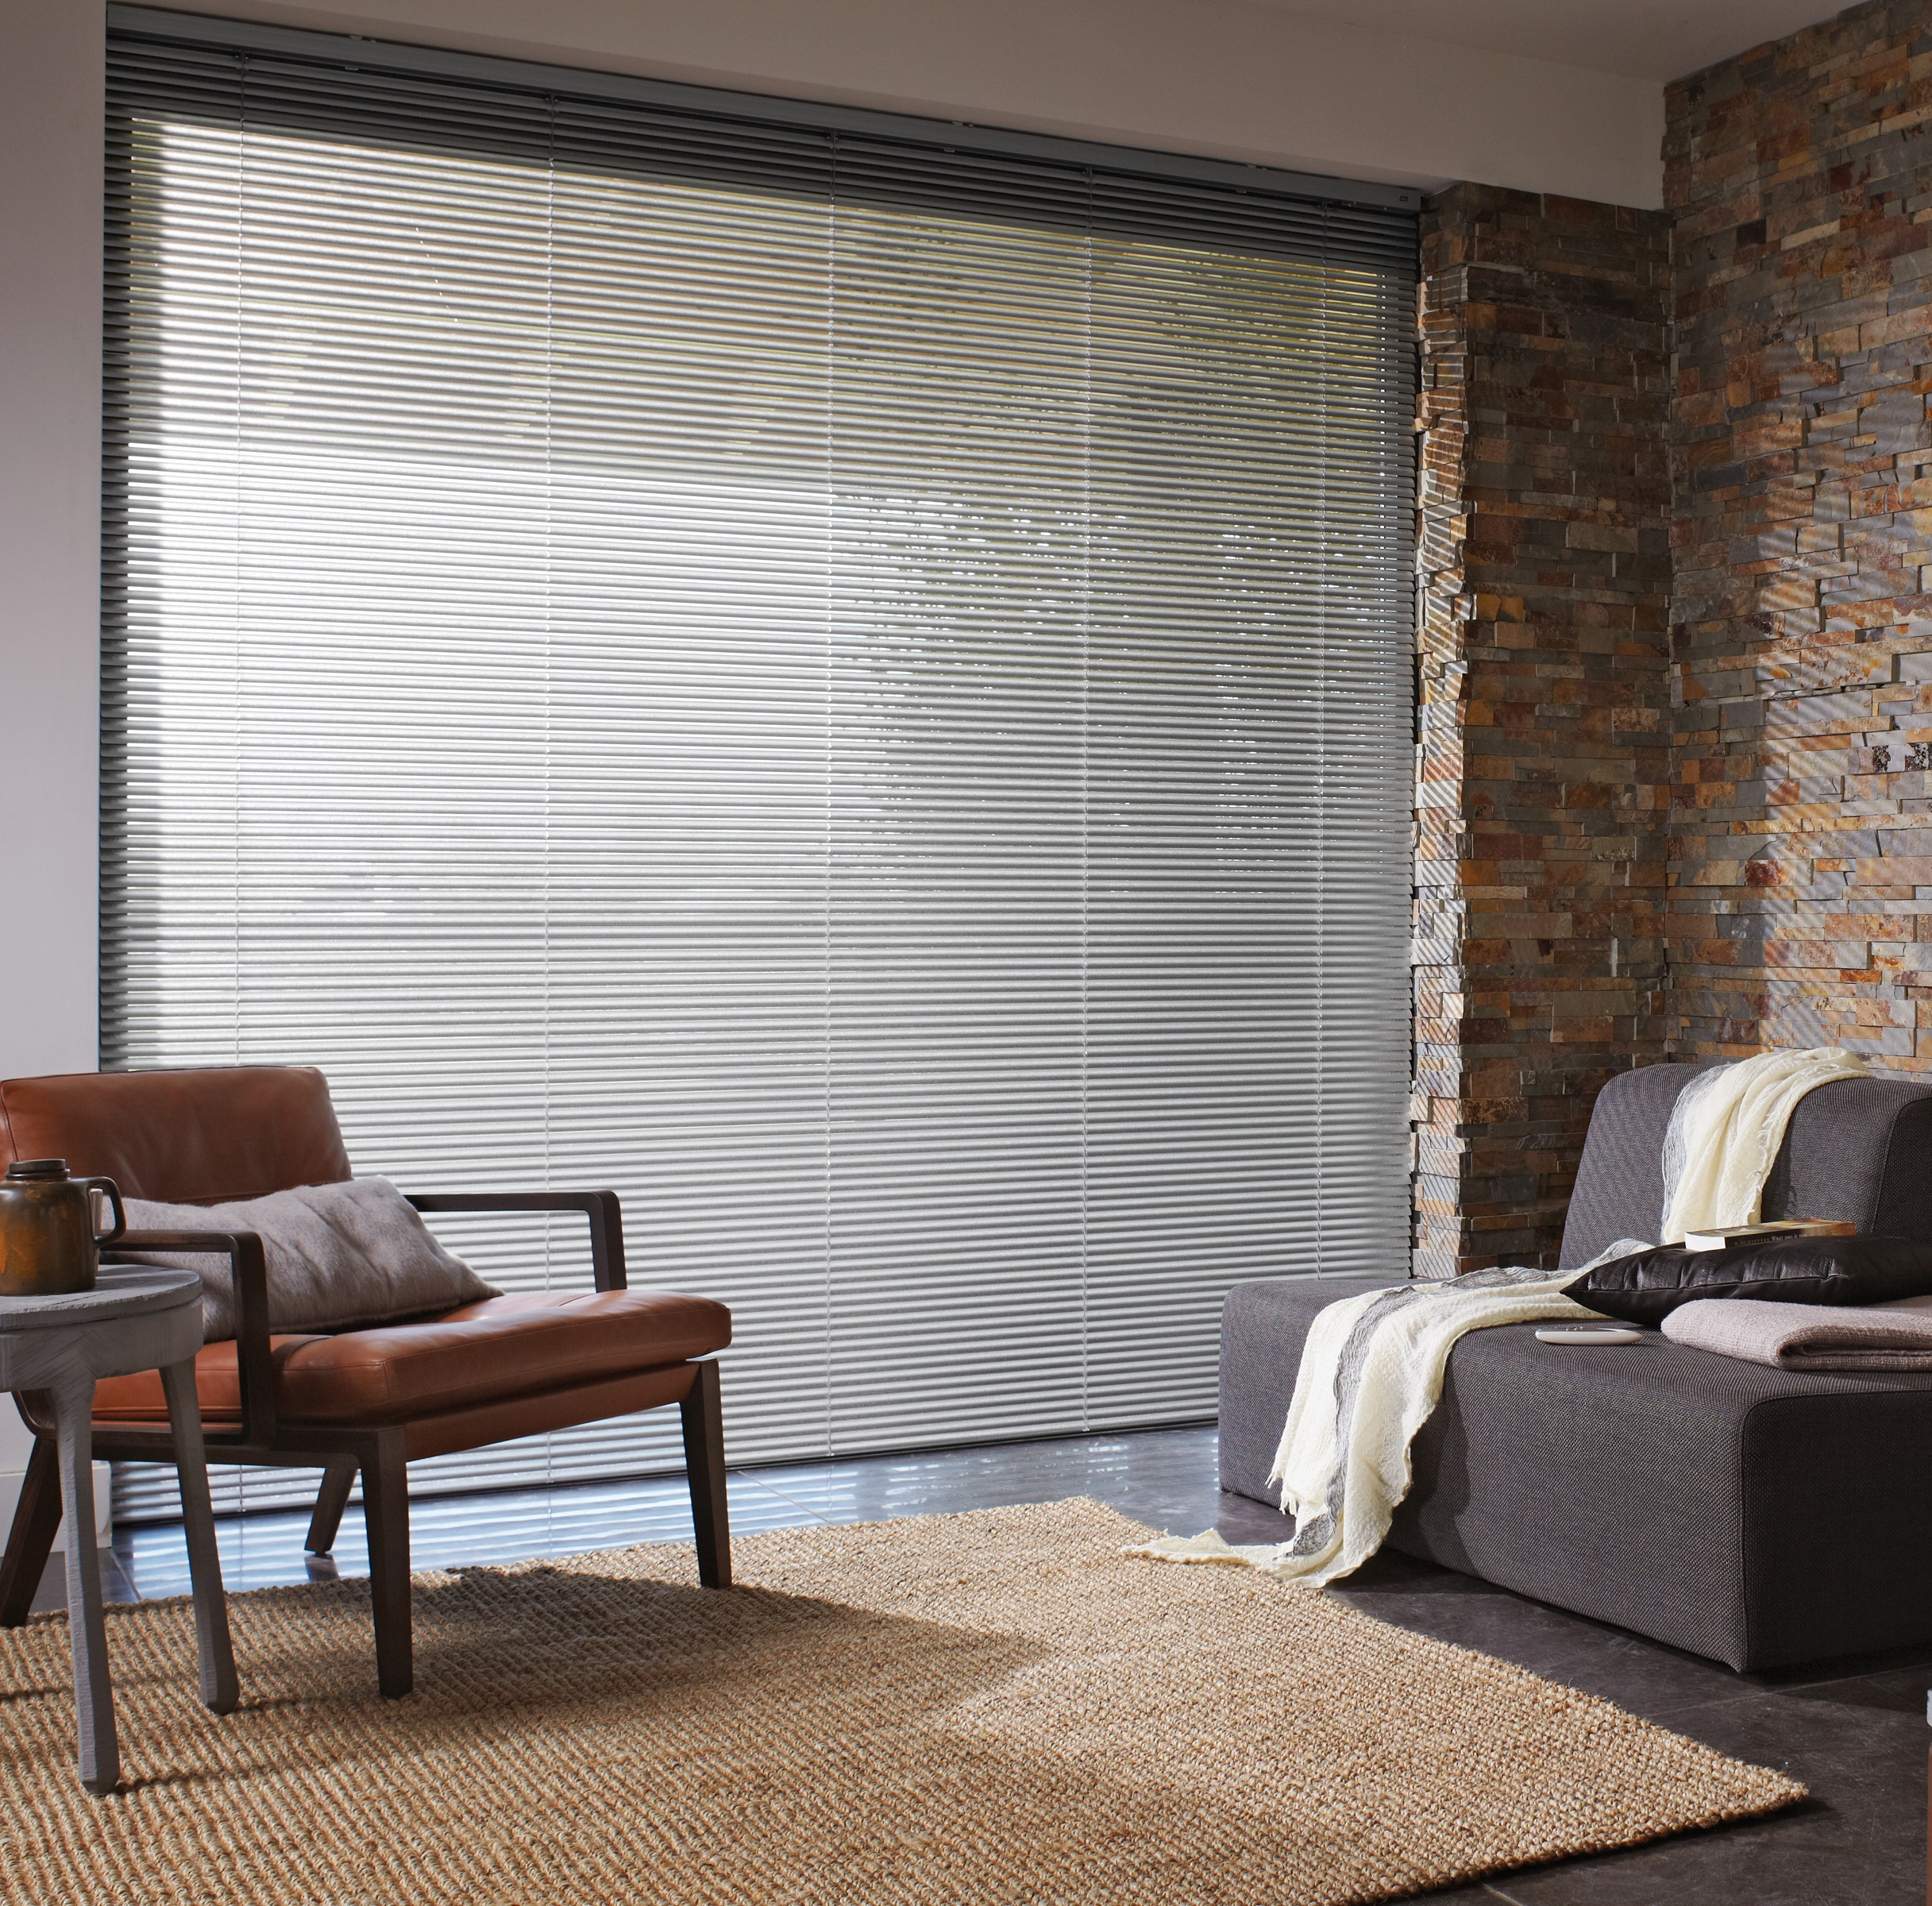 Luxaflex 25mm Grey Metal Venetian Blind